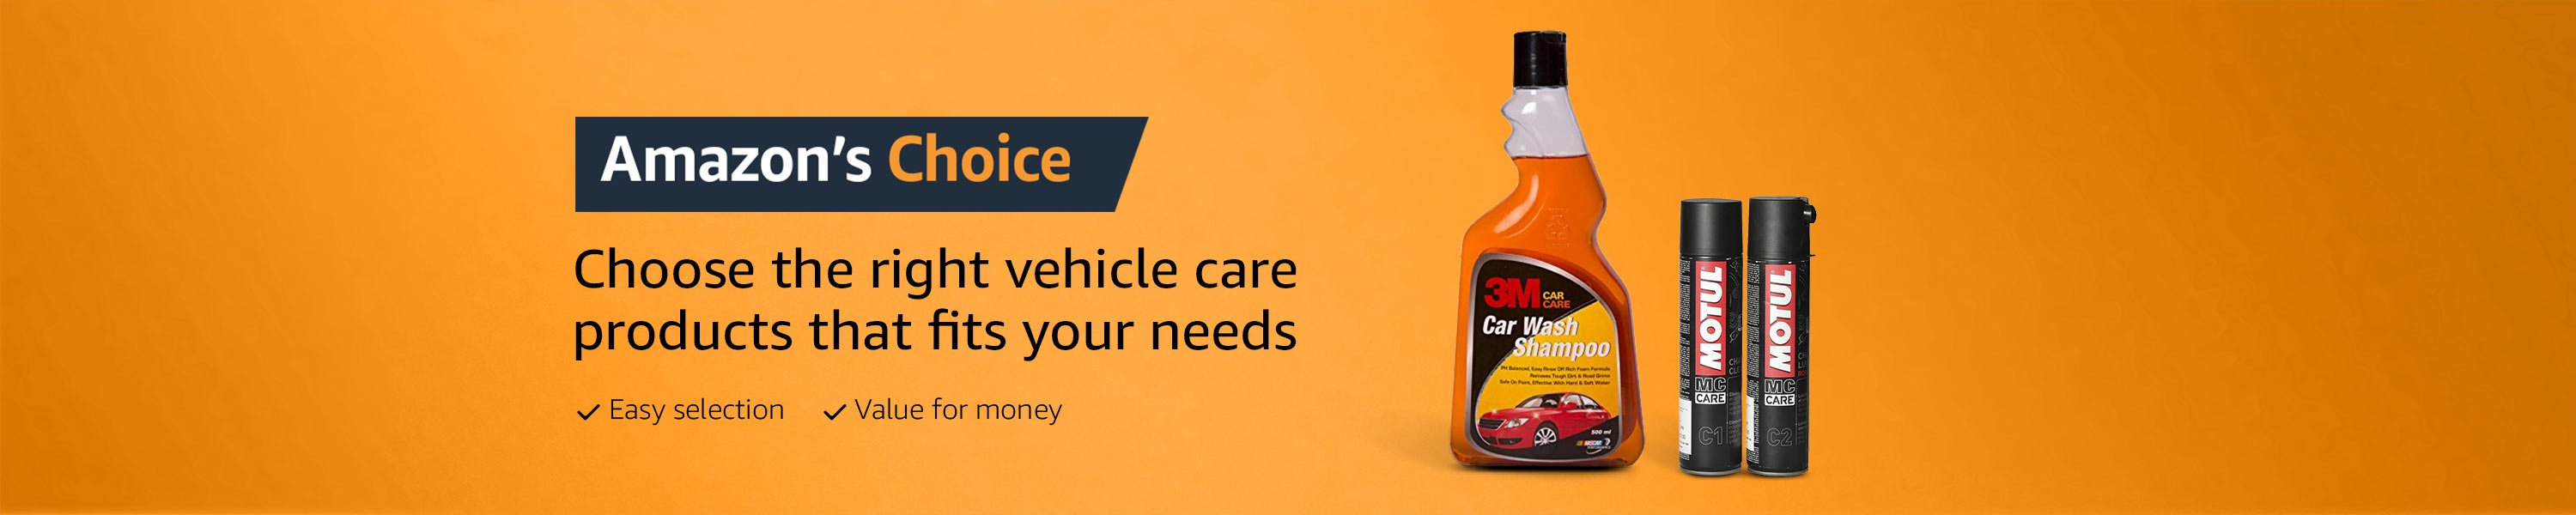 amazon choice vehicle care